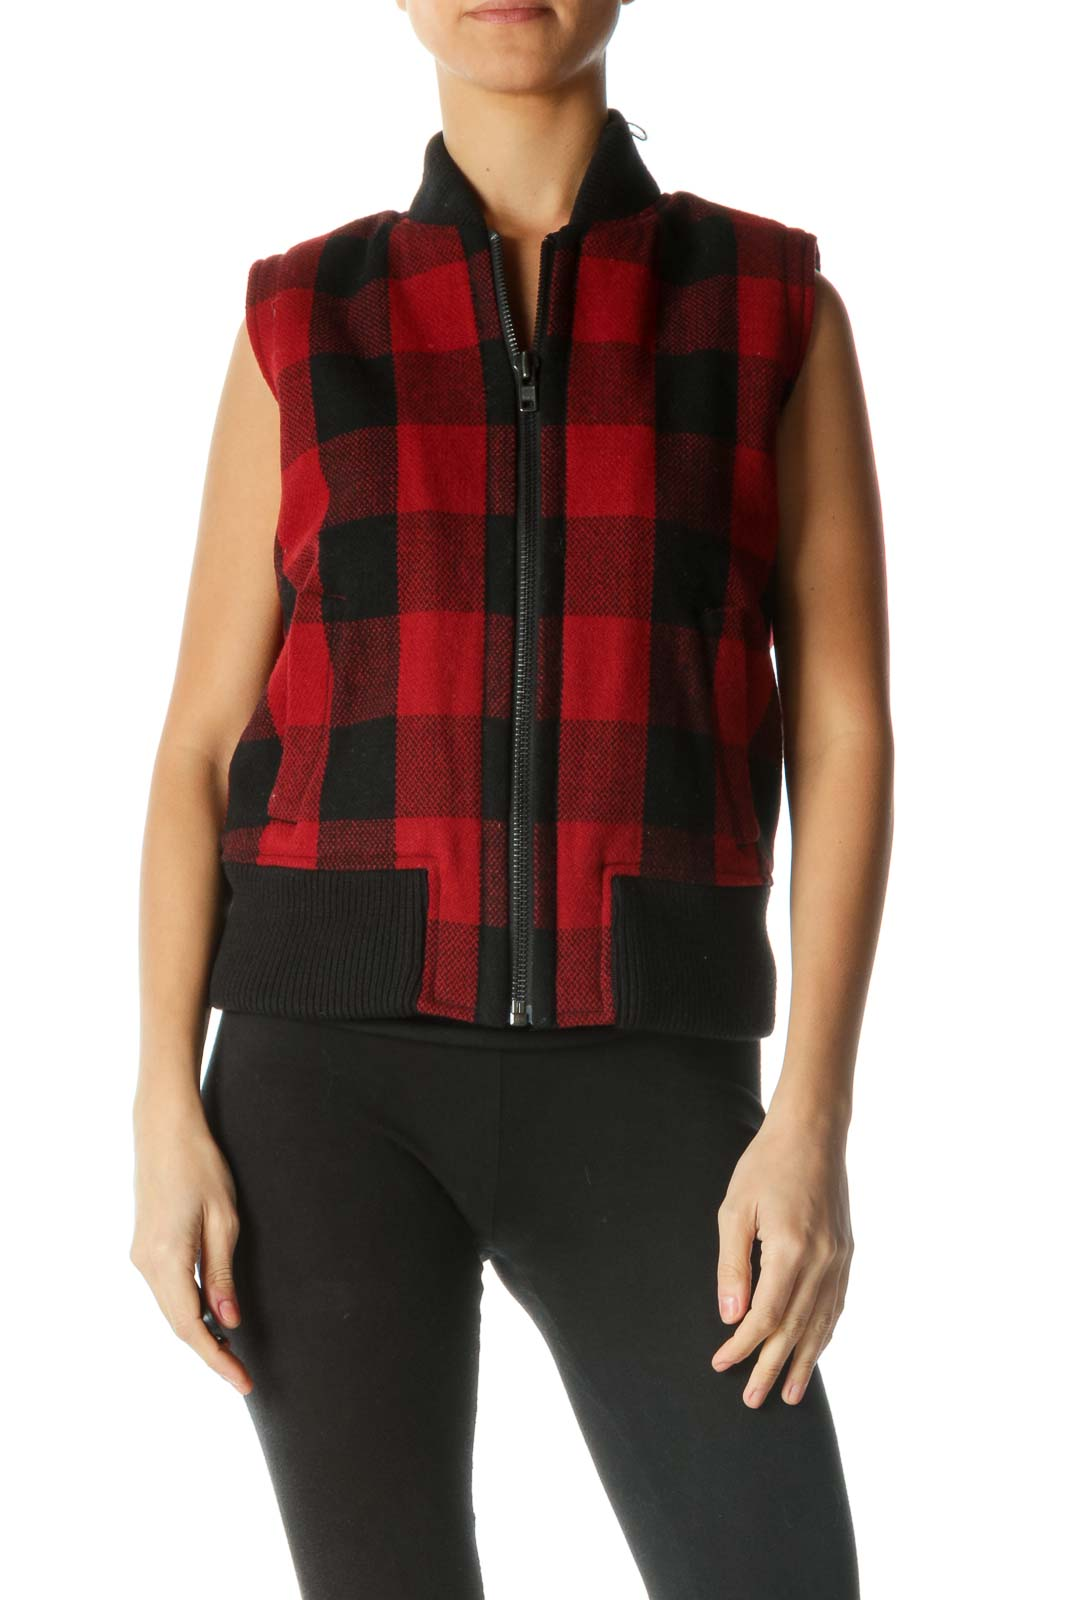 Black and Red Plaid Vest